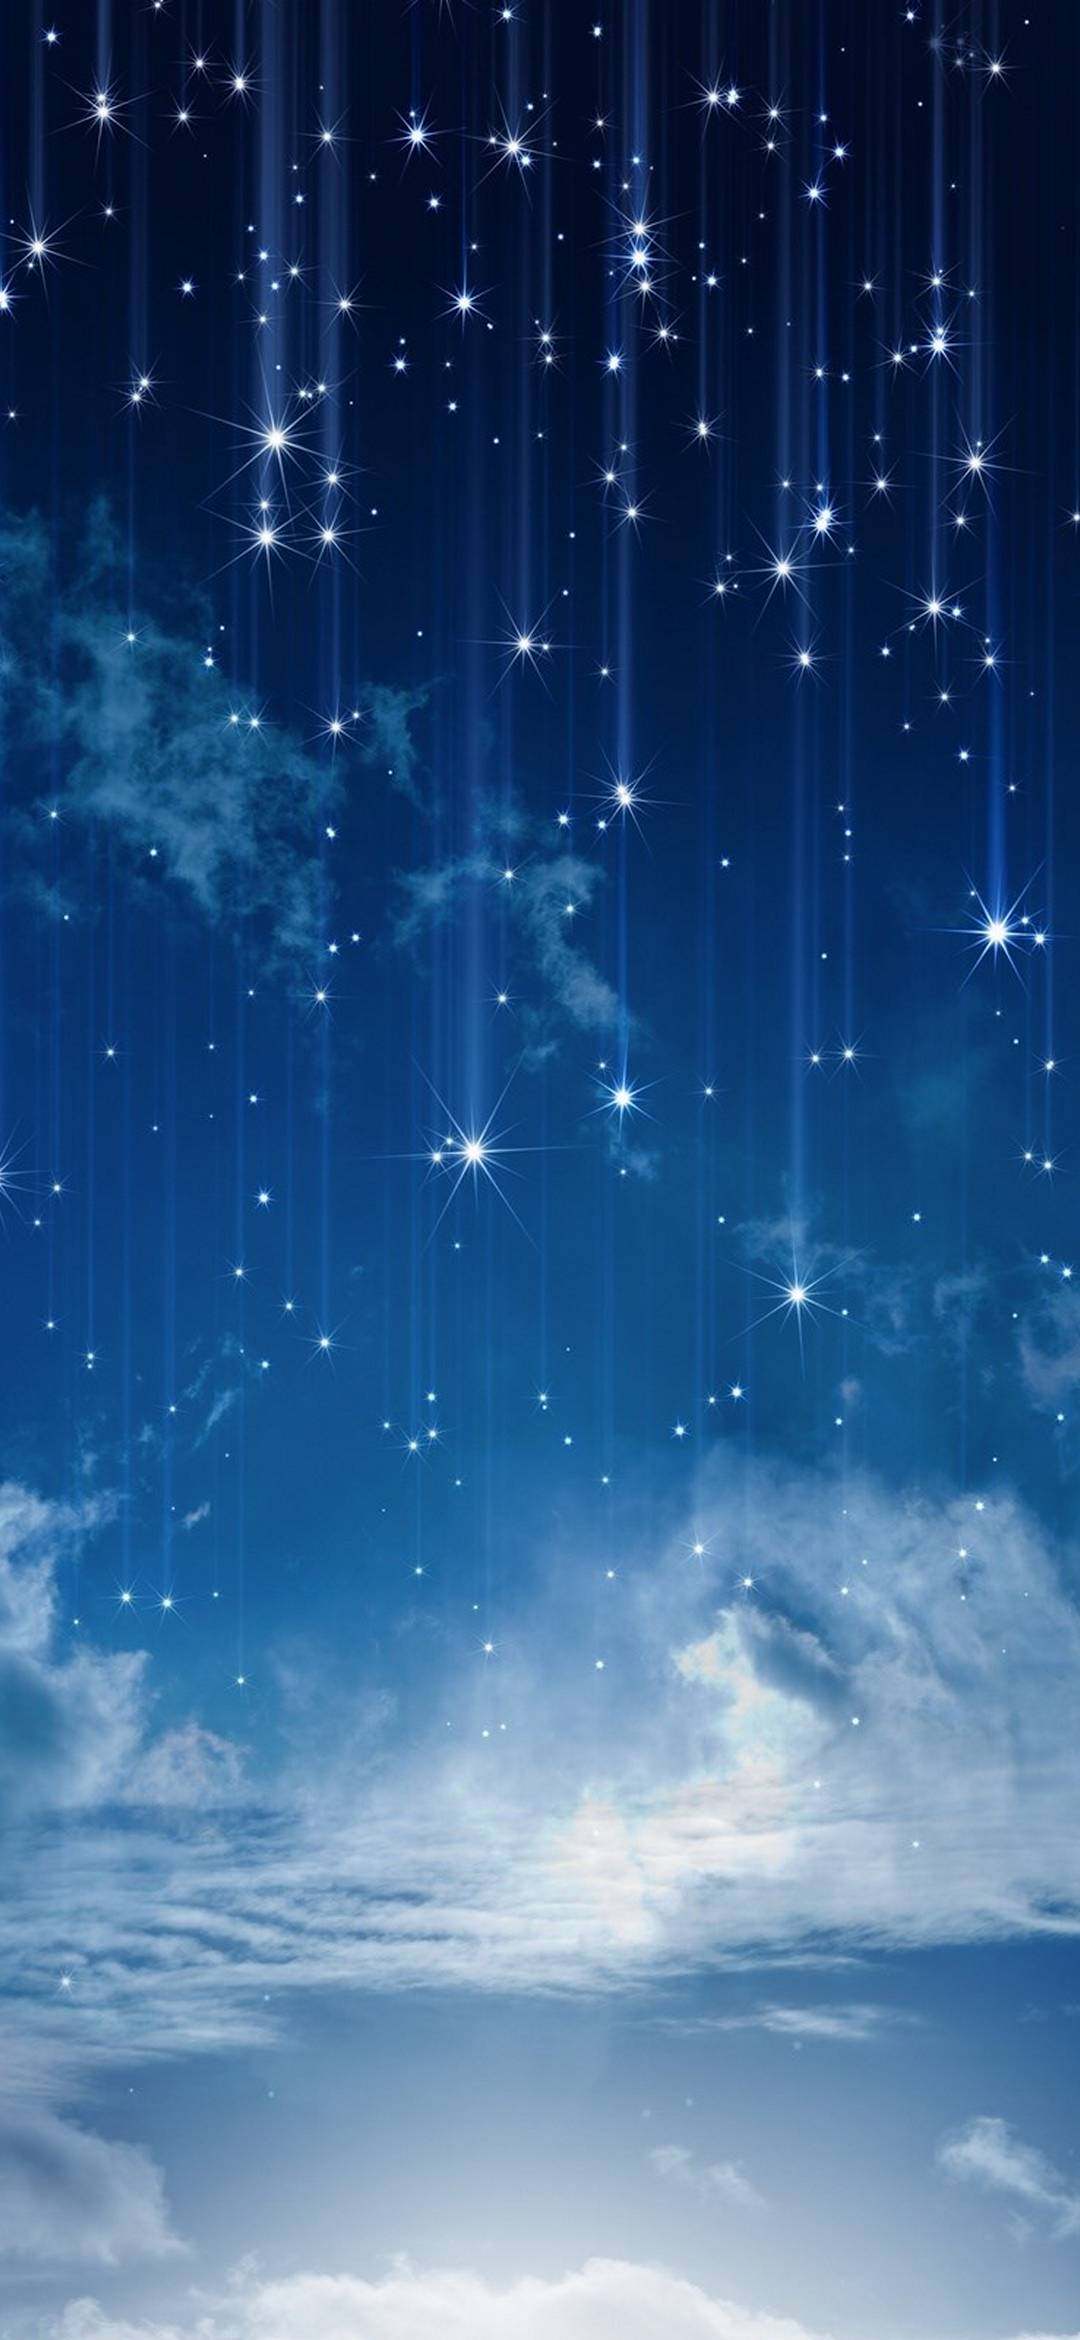 Best 3d Iphone Wallpapers Sky Moonlight Nature Night Stars Clouds 1080x2340